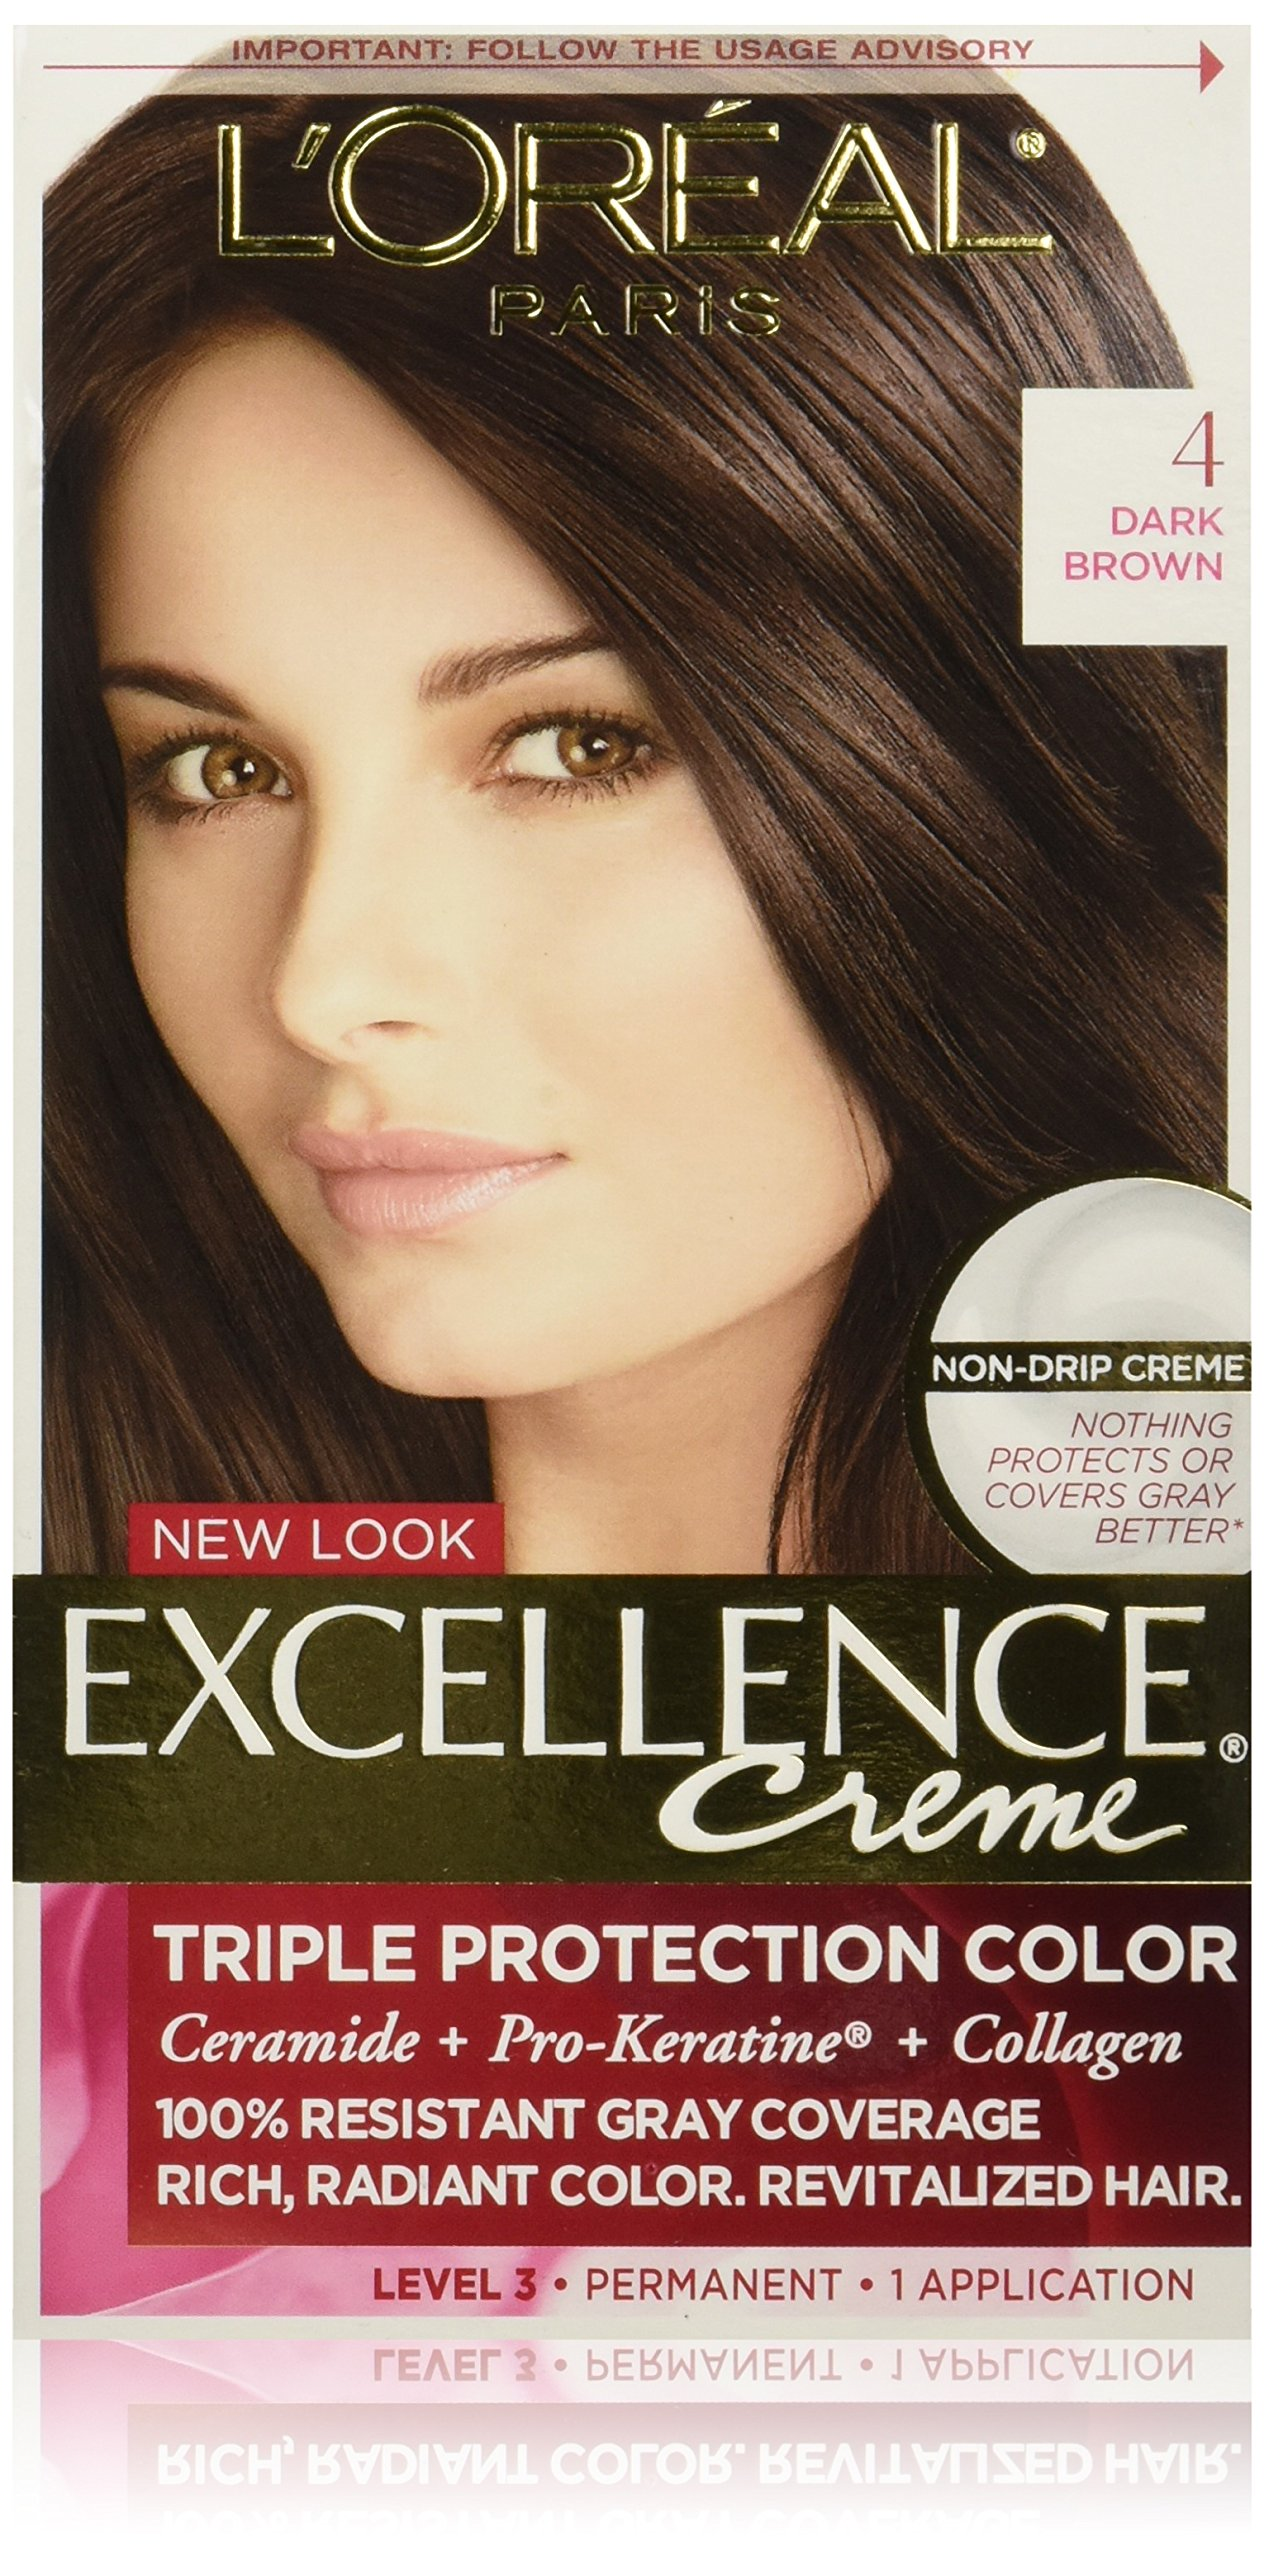 L'Oréal Paris Excellence Créme Permanent Hair Color, 4 Dark Brown